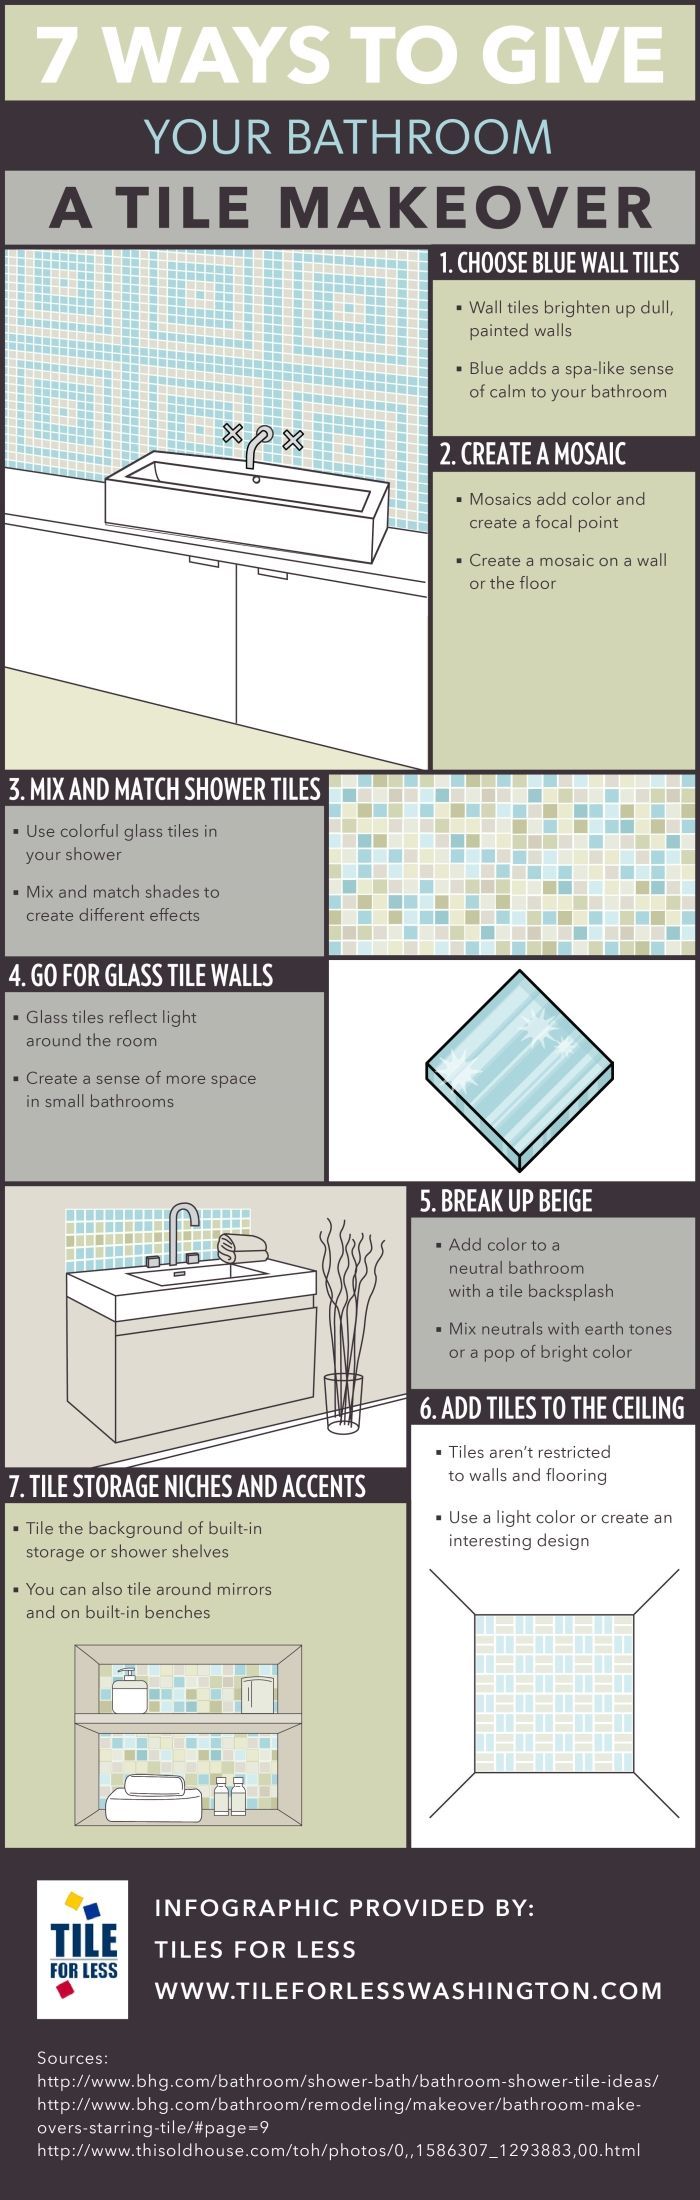 25 melhores ideias de discount tile flooring no pinterest tiles dont have to be restricted to walls and flooring enhance your bathroom dcor by adding tiles to the ceiling click over to this seattle discount doublecrazyfo Image collections